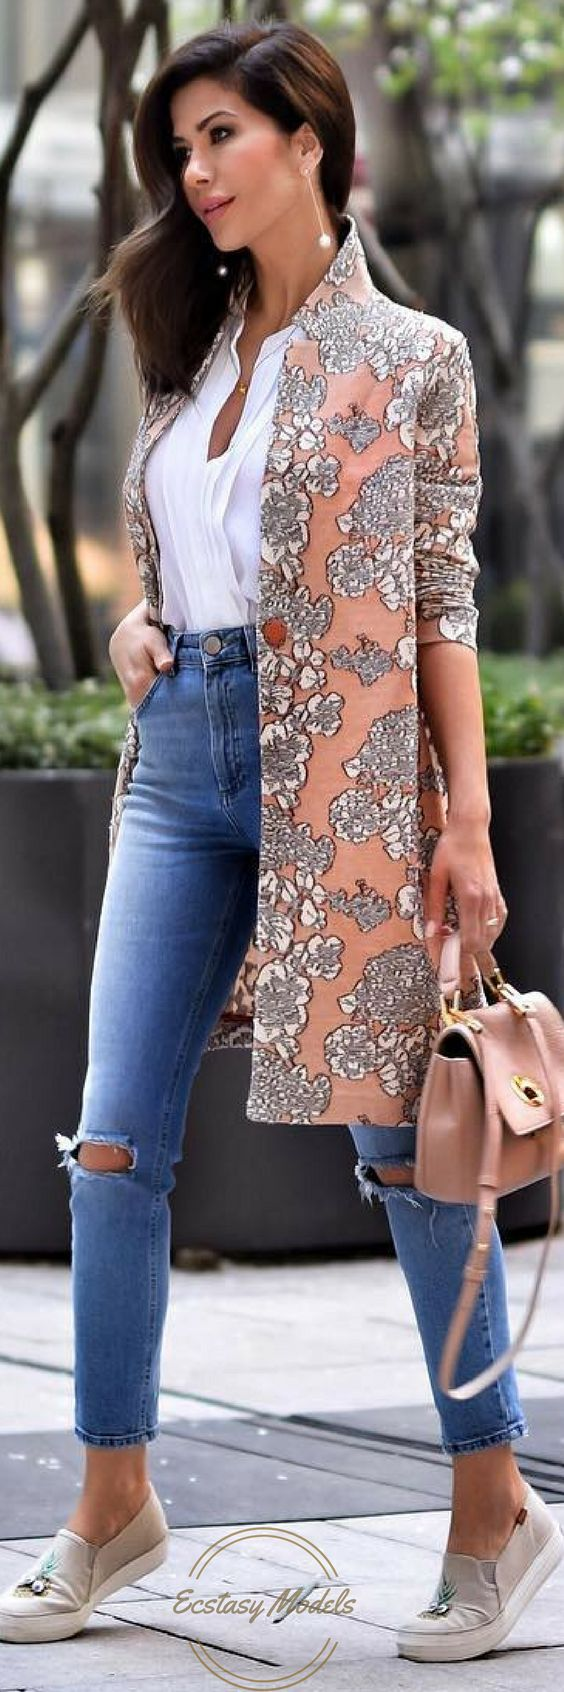 Floral Front Coat by @falconeriofficial // Fashion Look by shortstoriesandskirts